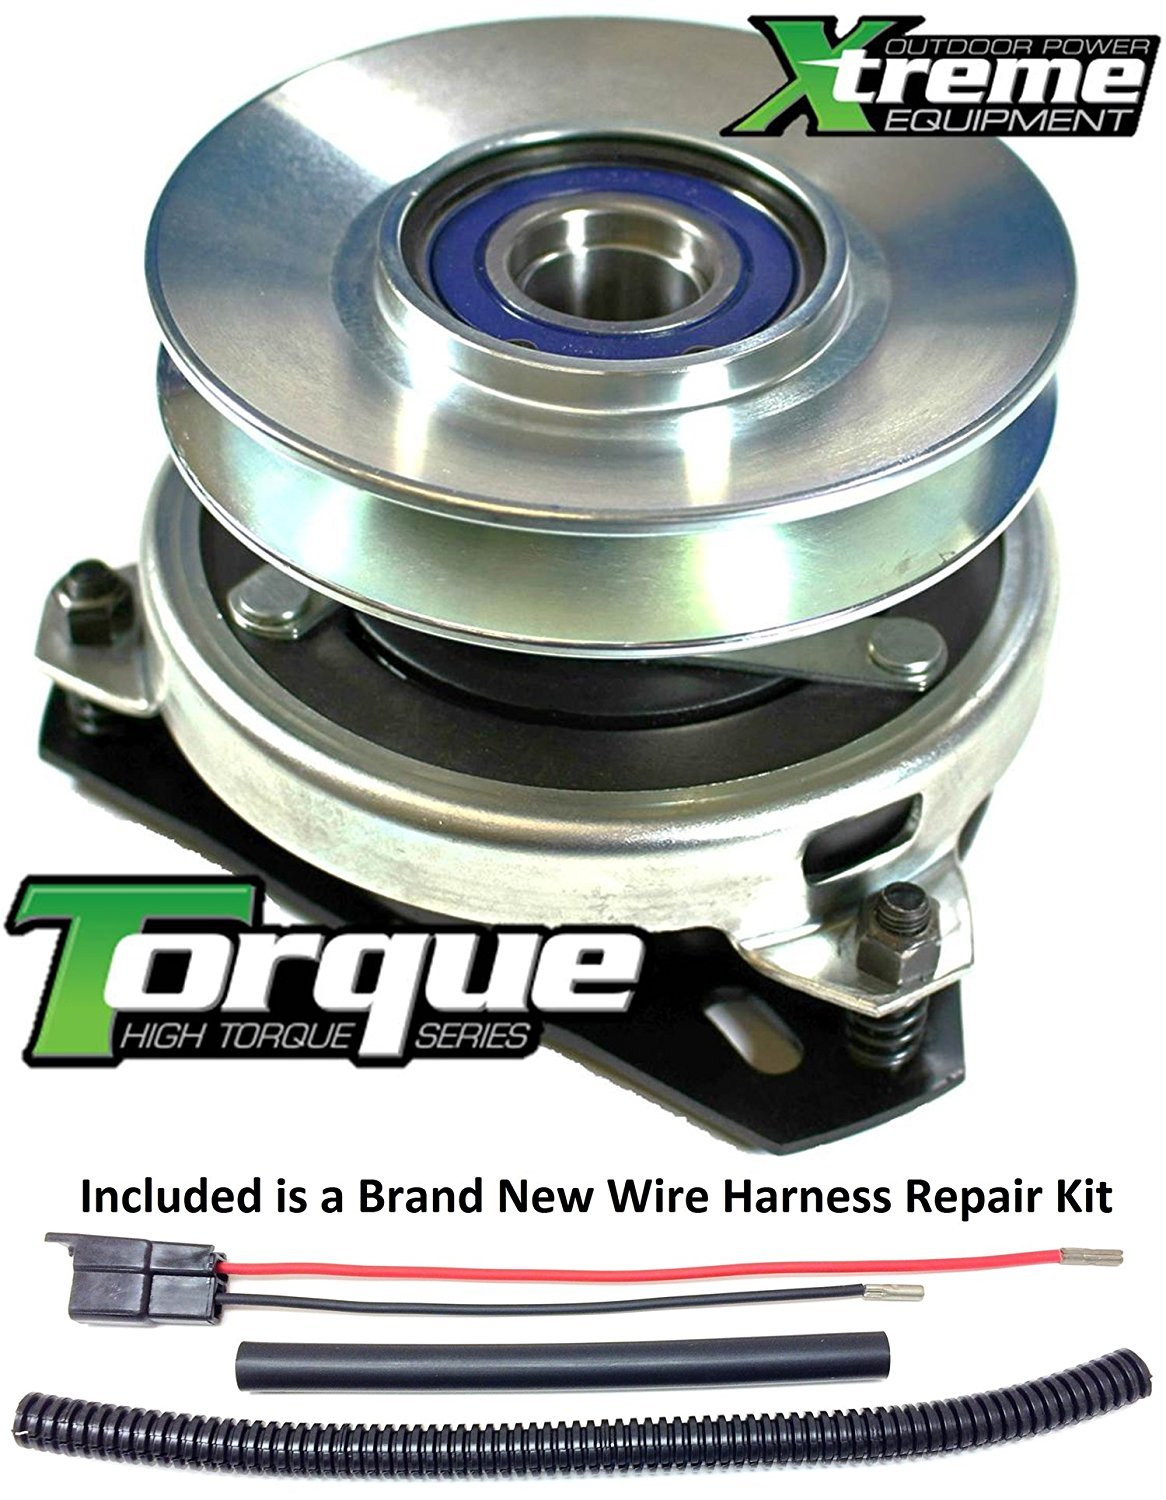 Bundle 2 Items Pto Electric Blade Clutch Wire Harness Repair Kit Engine Wiring Replaces Cub Cadet 717 04127 Lawn Mower Upgraded W